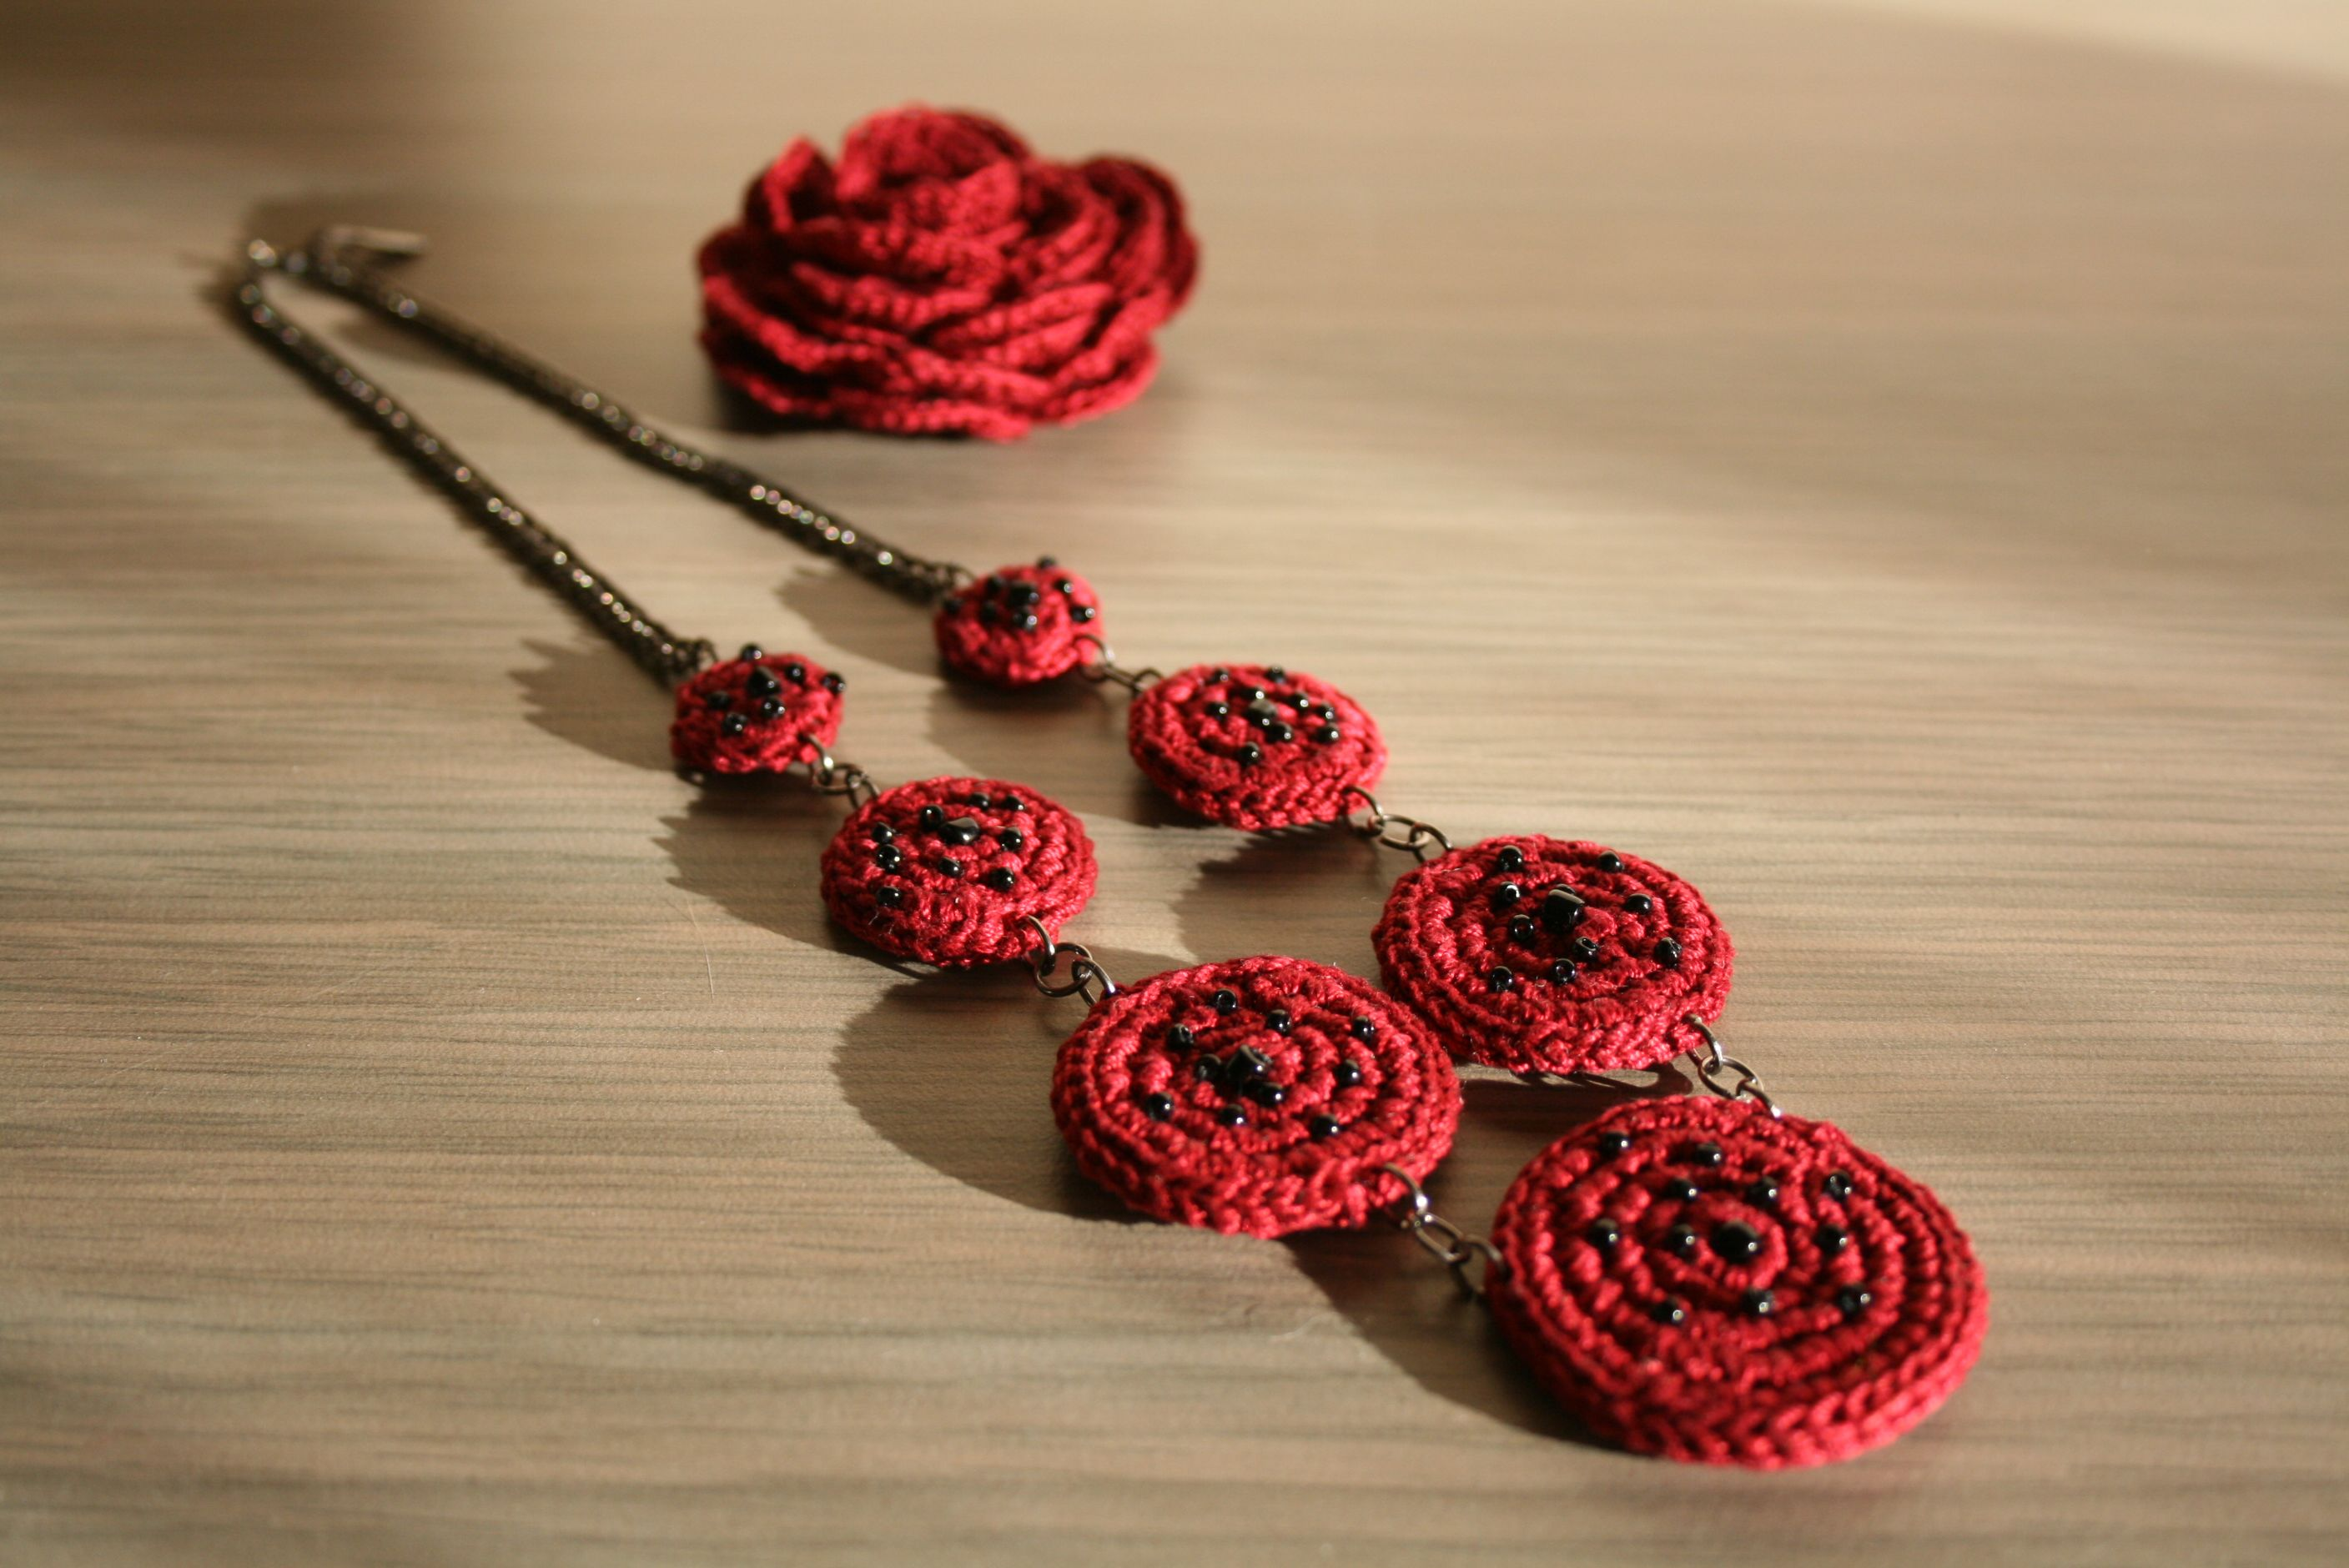 Crochet accessories. My crochet. Pinterest